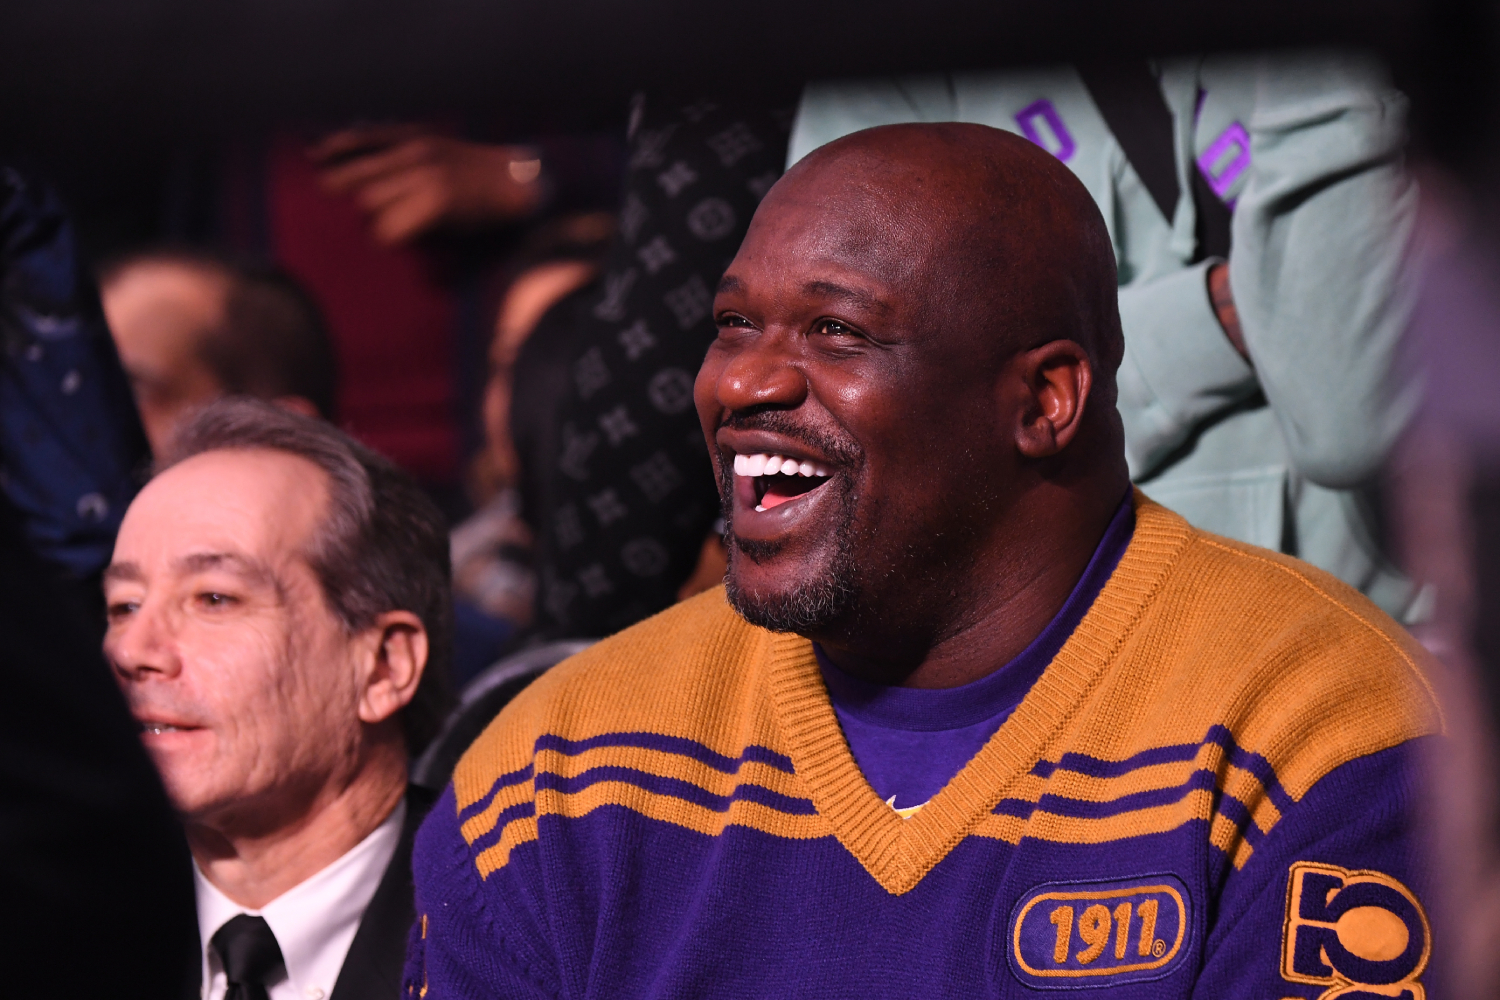 Shaquille O'Neal Said a Geek Saved His Life When He Was in High School